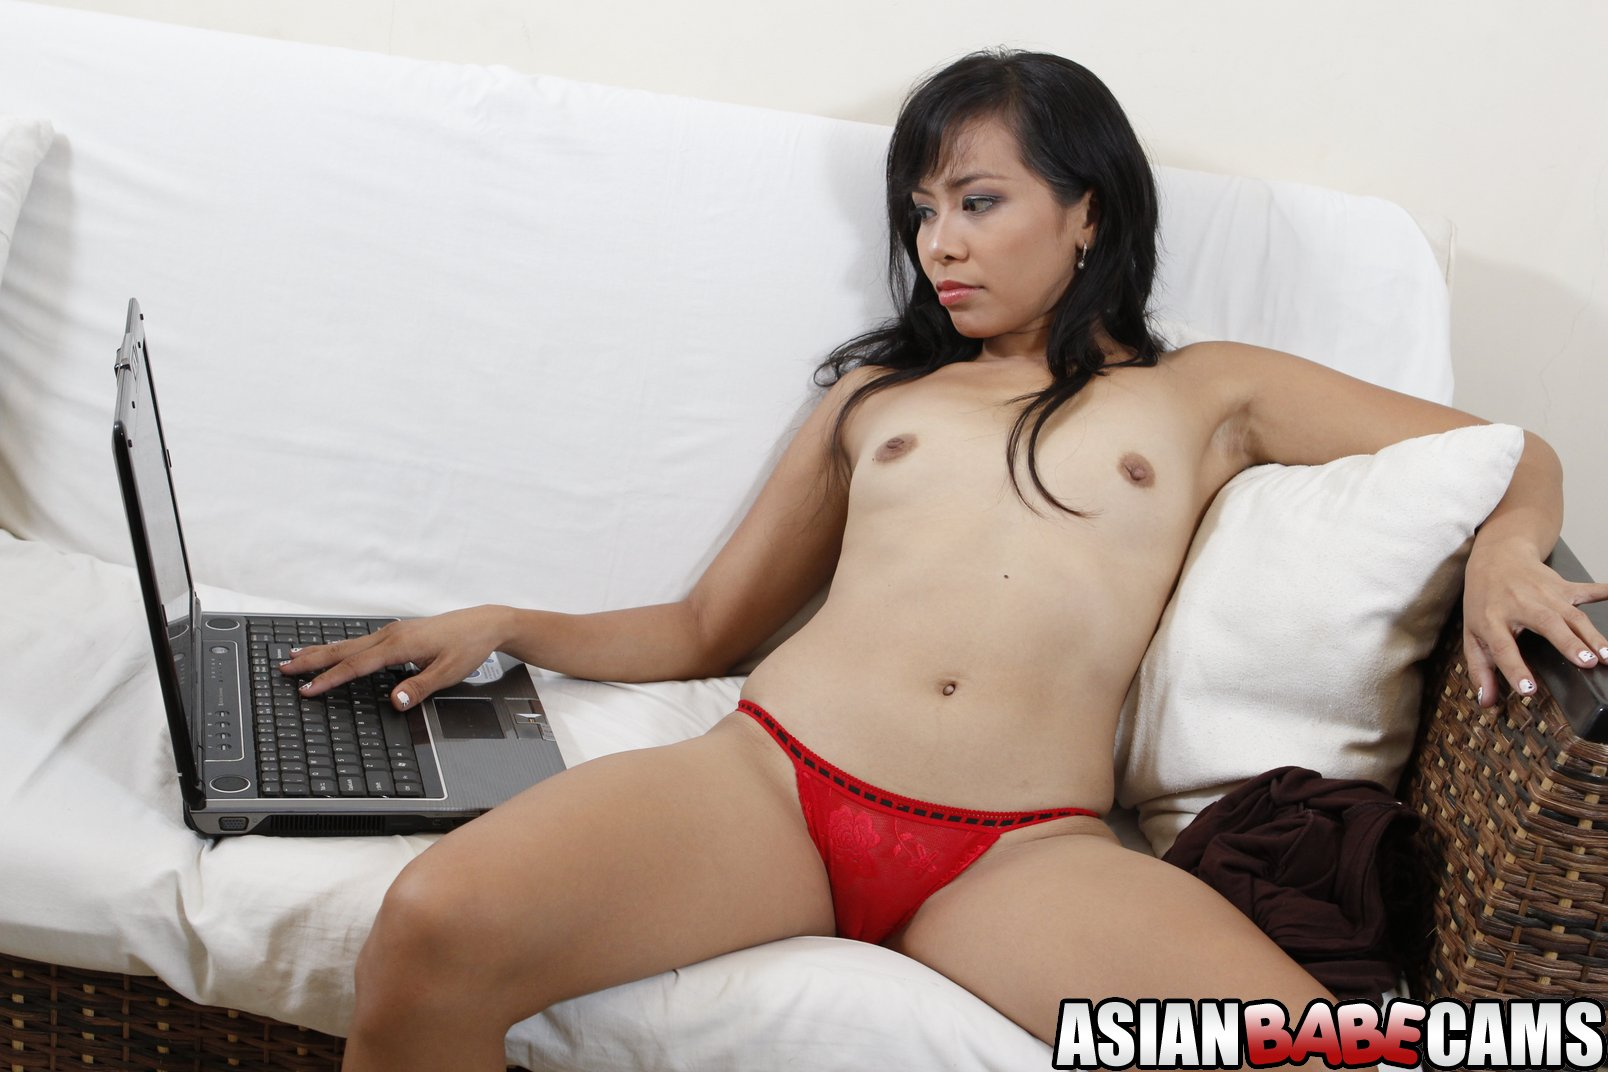 Asian babe cam zenny